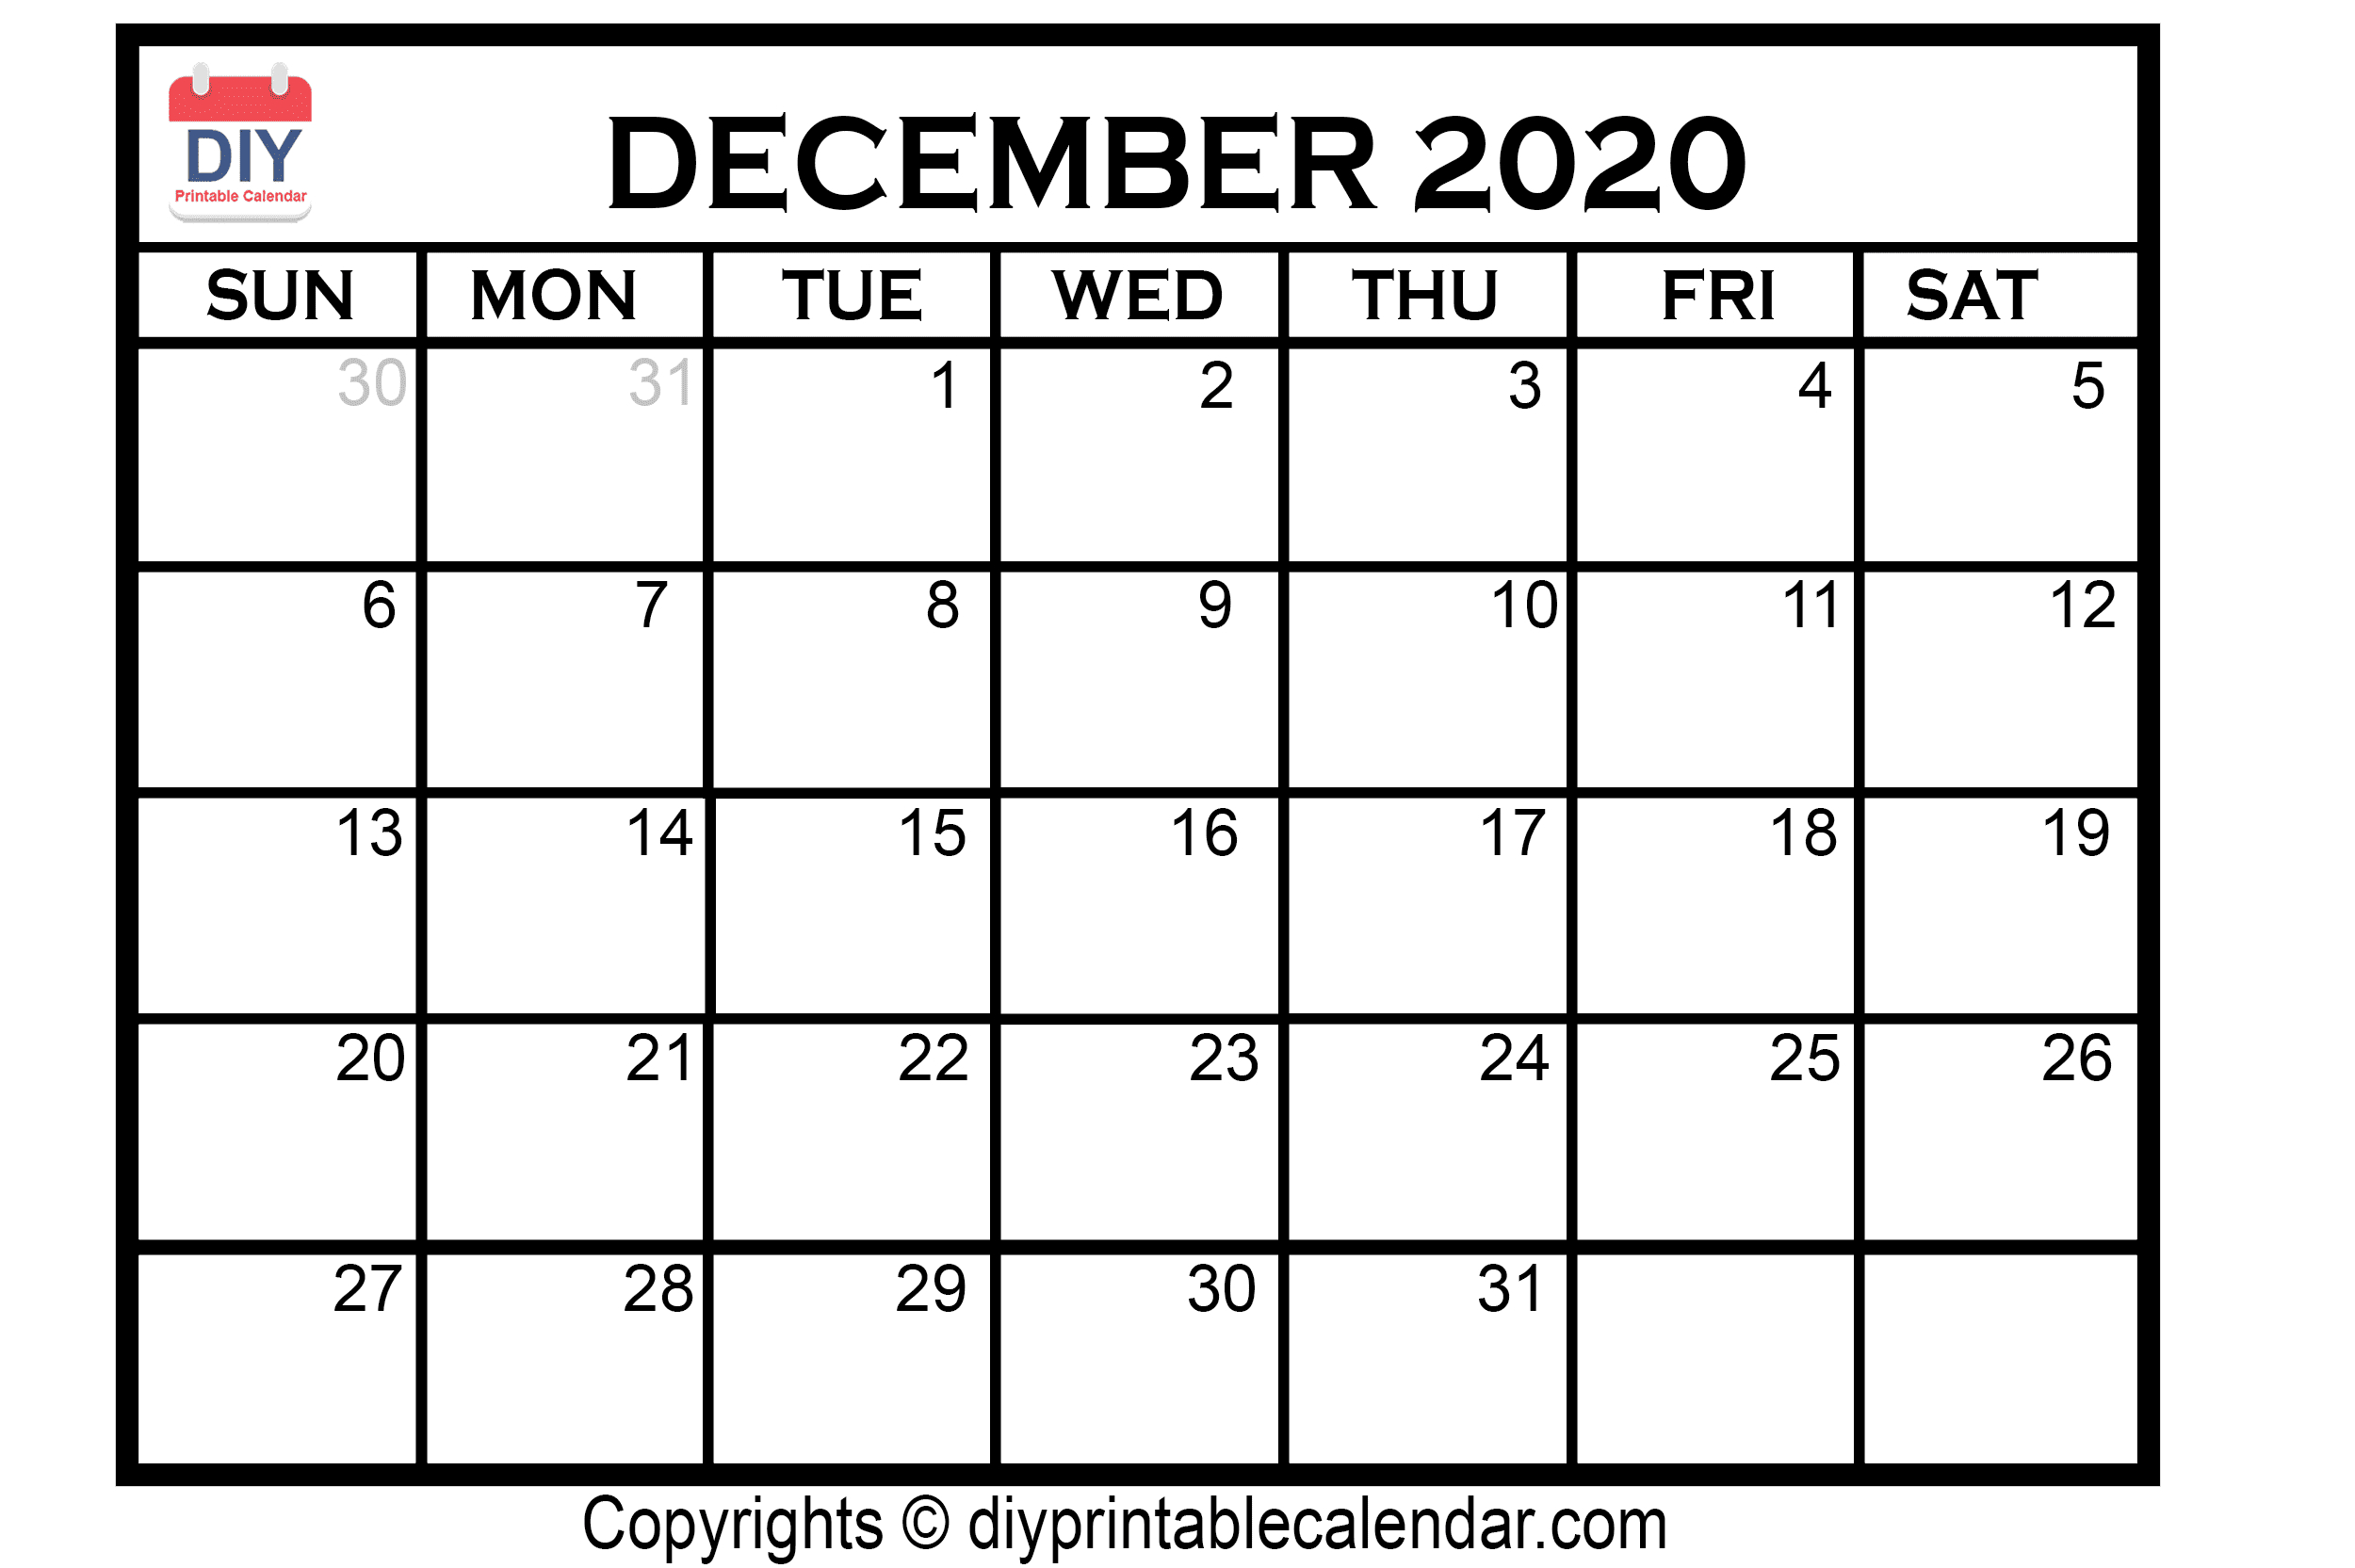 December 2020 Printable Calendar Template for 2020 Calendars To Print Without Downloading